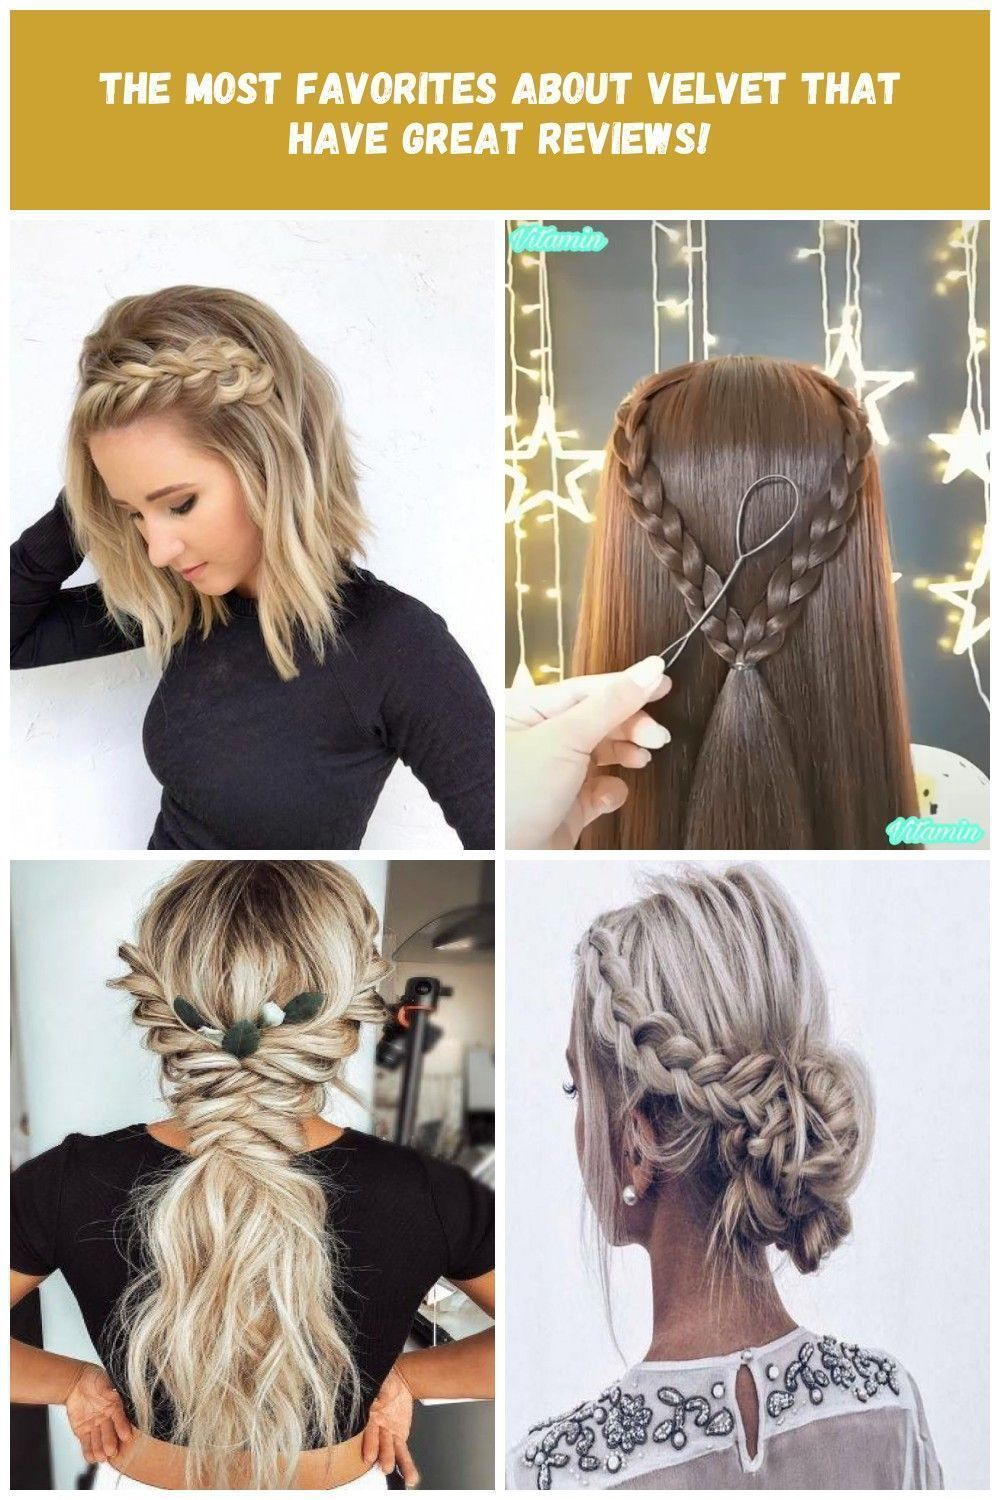 Trendsetting hairstyles for wedding guests: bob with side braid for short hair. ... -  Trendsetting hairstyles for wedding guests: bob with side braid for short hair. #Longhairstyles wed - #beautifulhairstylesforwedding #bob #braid #diyhairstyleslong #diyweddinghairstyles #guests #Hair #hairstyles #hairstylesweddingguest #short #side #trendsetting #wedding #sidebraidhairstyles